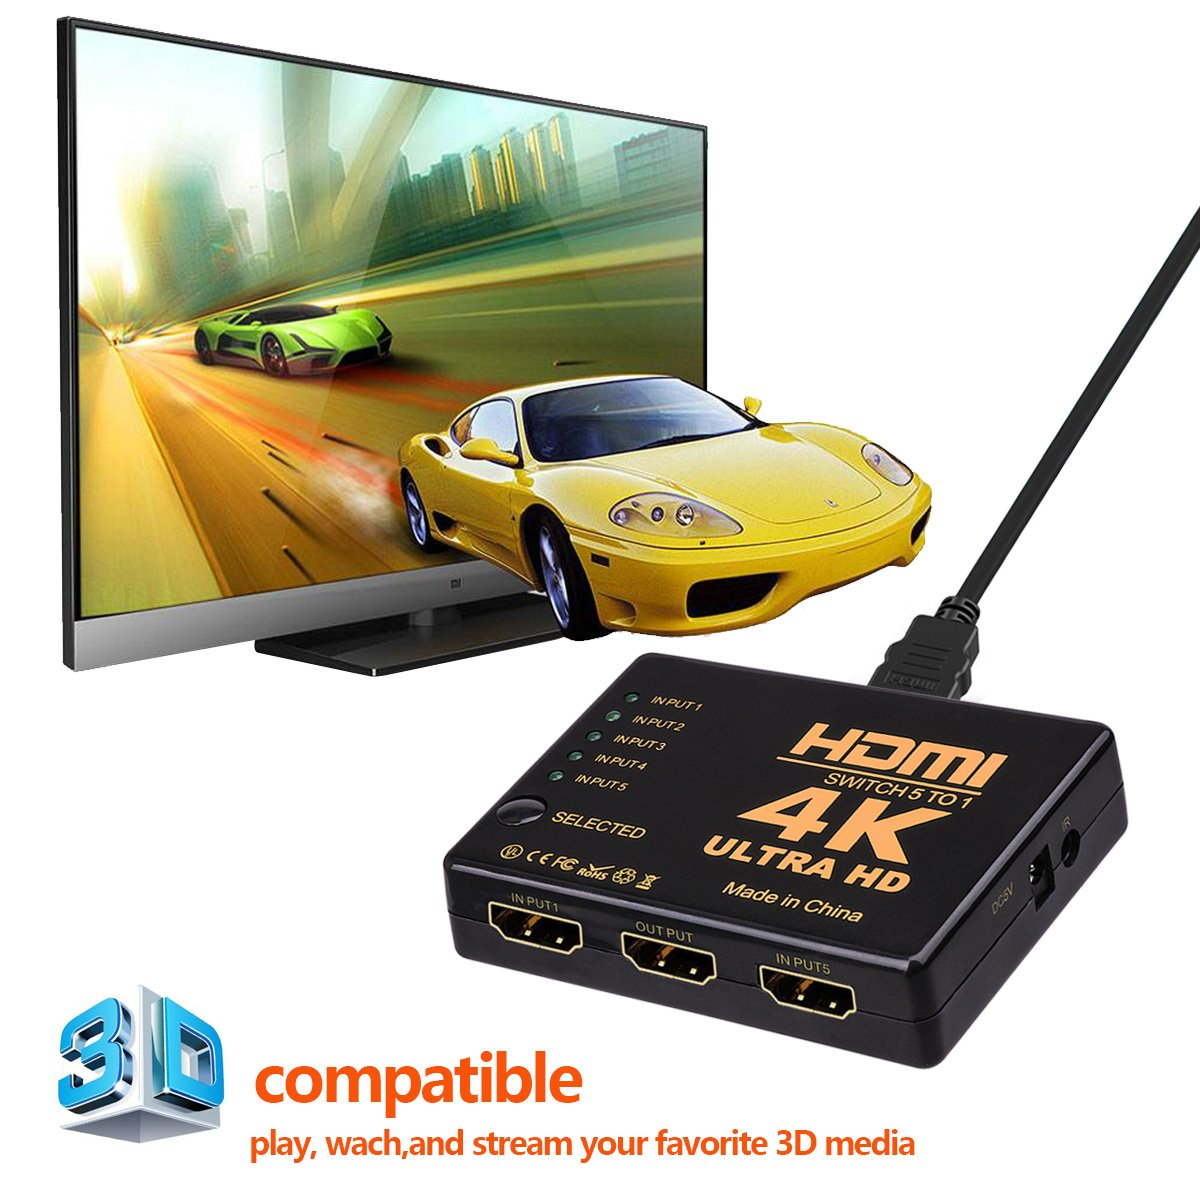 HDMI Switch Splitter,NXLFH Intelligent 5-Port HDMI Switcher, Supports 4K, Full HD1080p, 3D with IR Remote 1080P HD Audio for Nintendo Switch, Xbox One, Roku 3, Apple TV HD TV XBox PS3 PS4 5 in 1 out by NXLFH (Image #3)